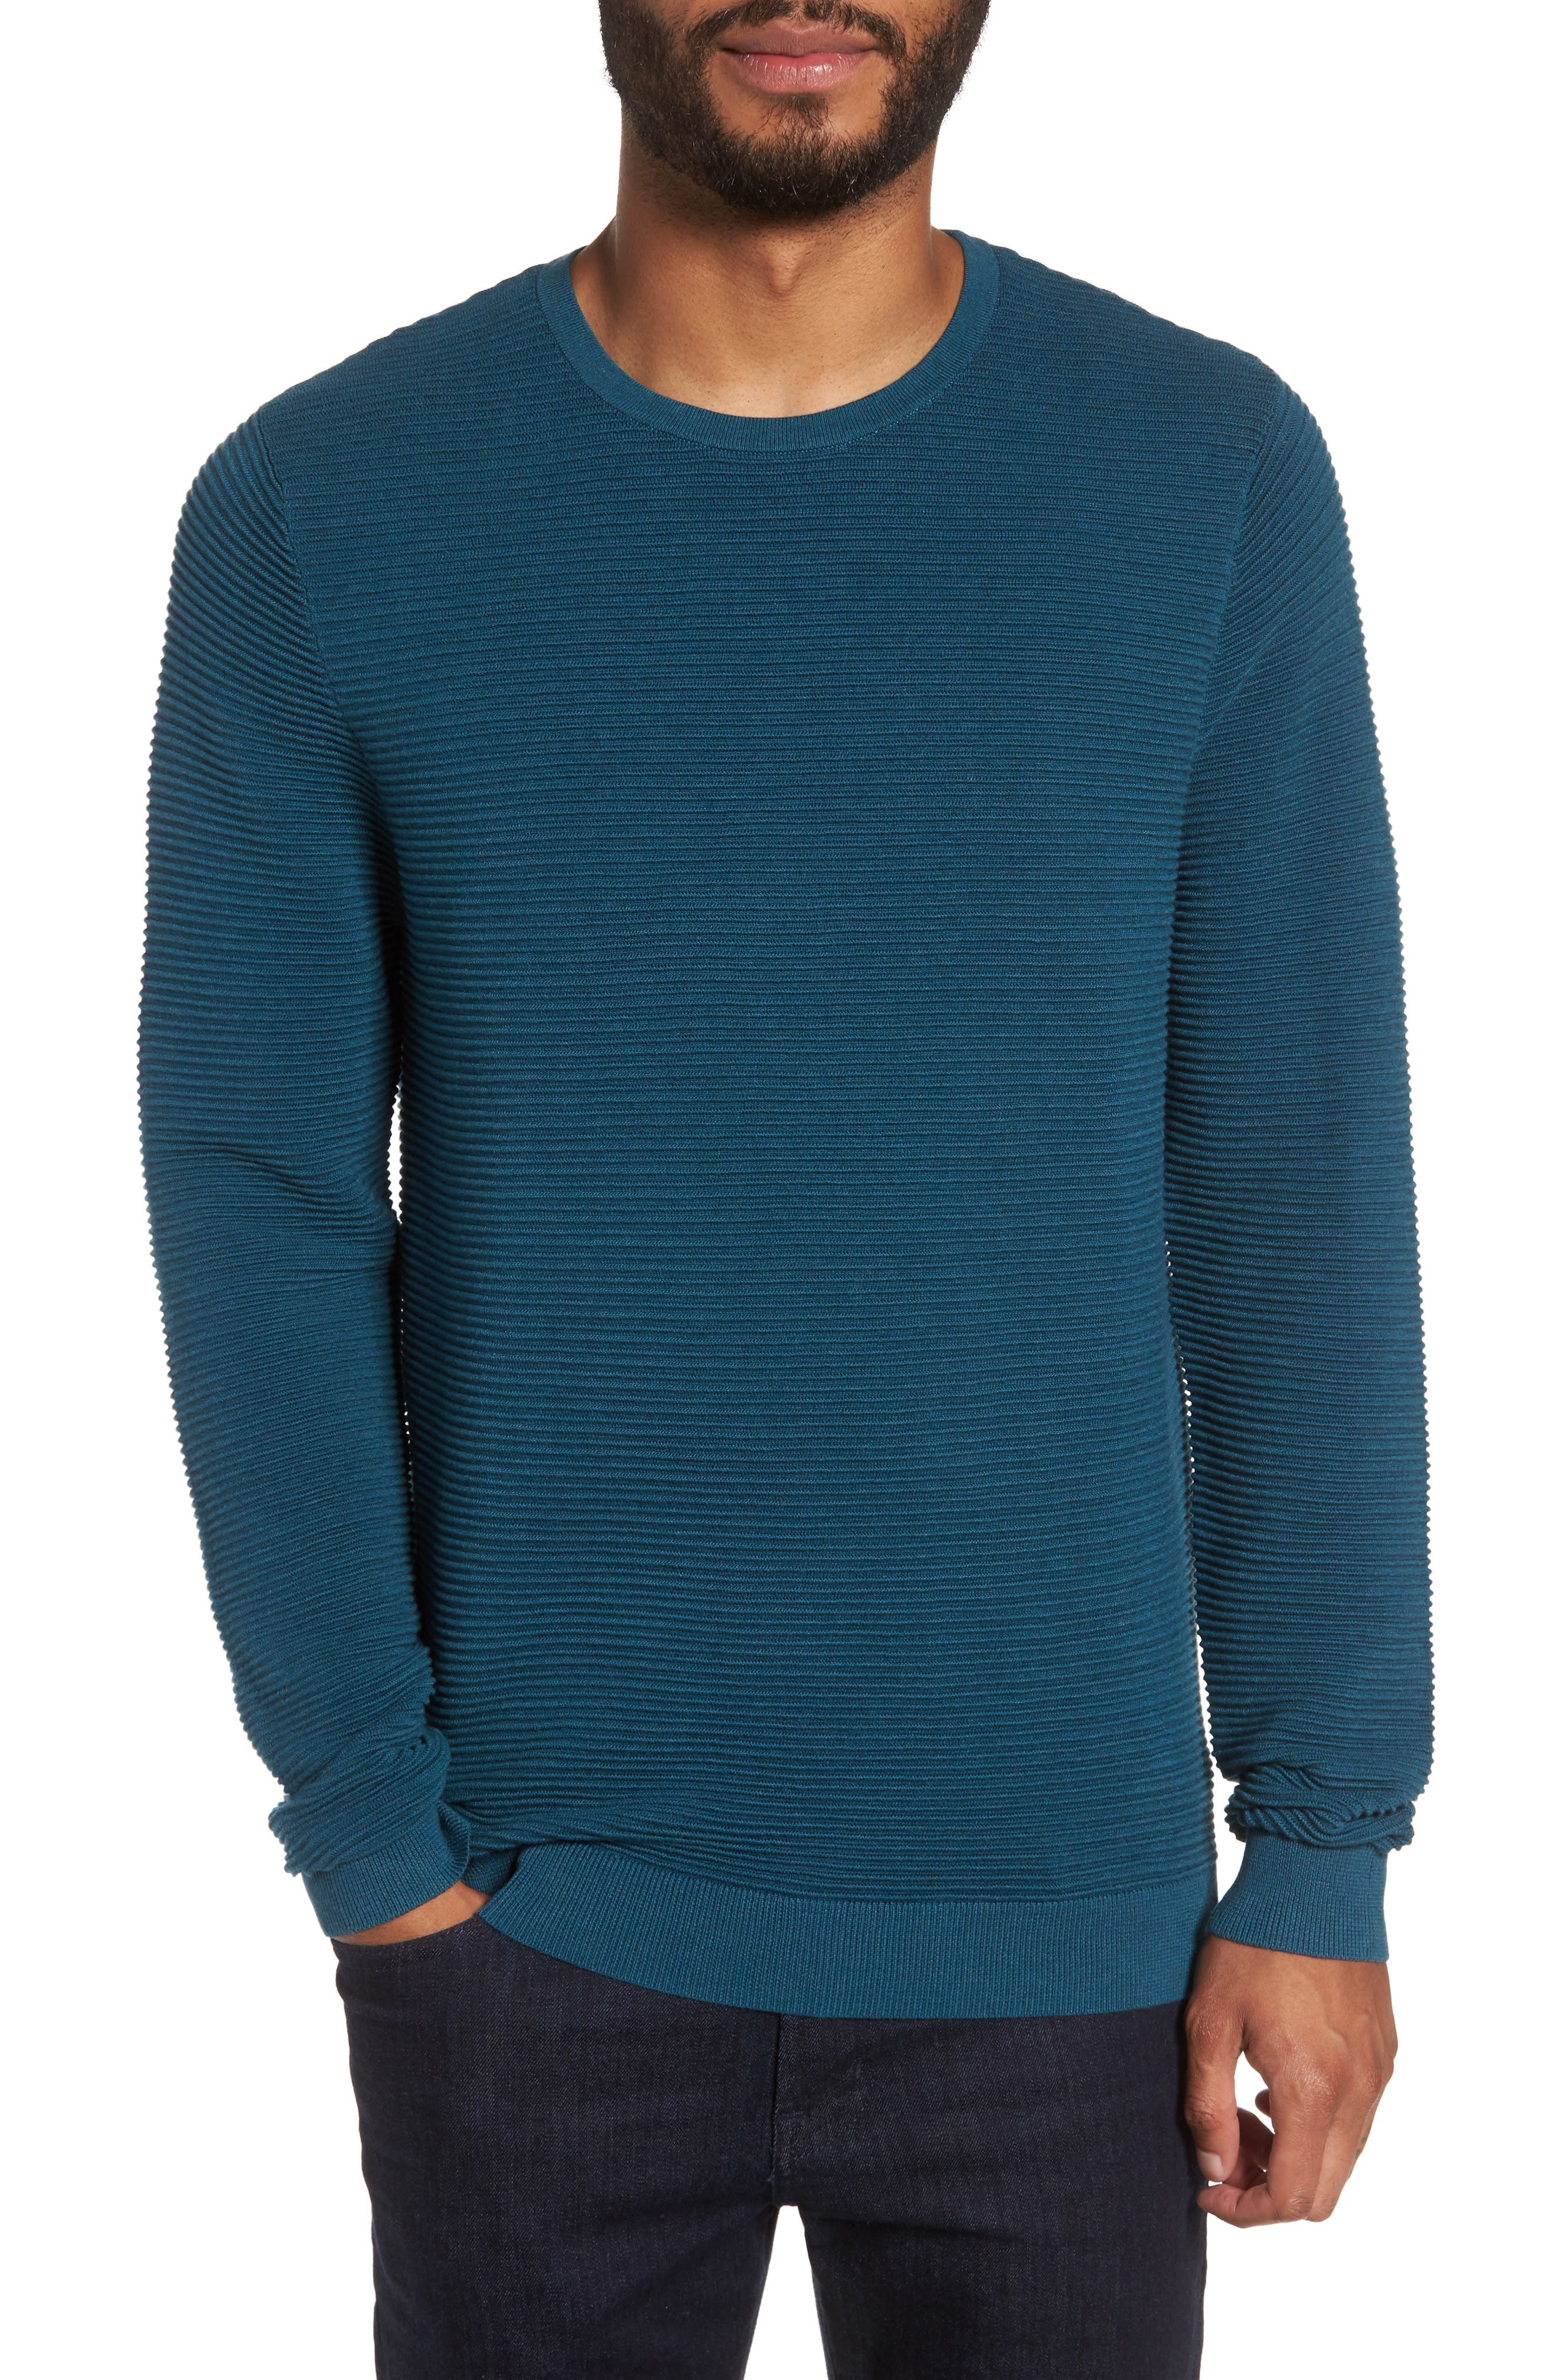 Alternate Image 1 Selected - Calibrate Ottoman Ribbed Crewneck Sweater